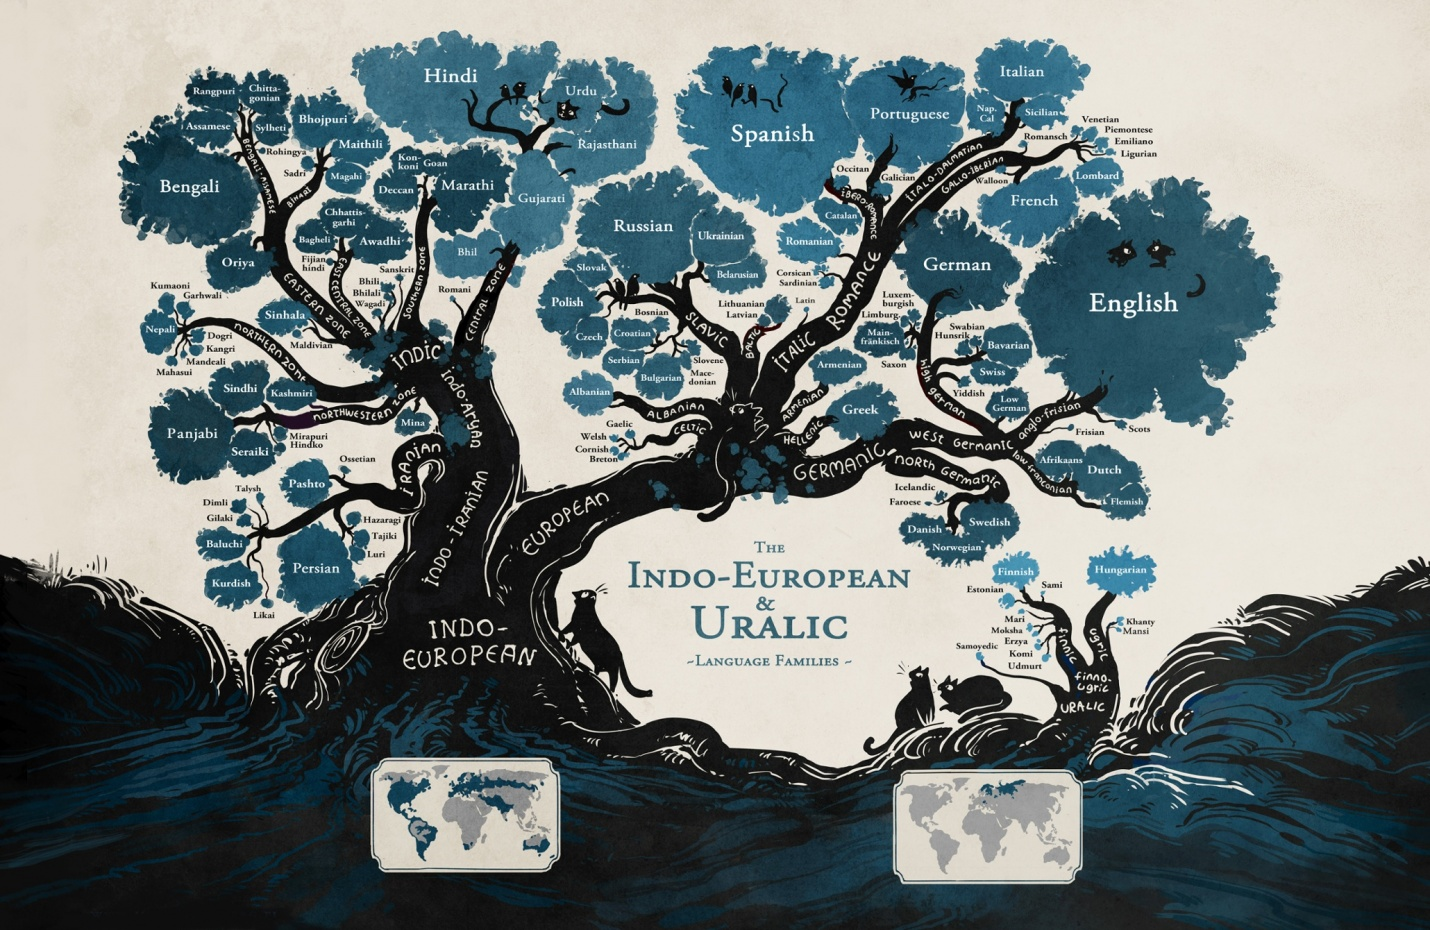 importance of trees in hindi language